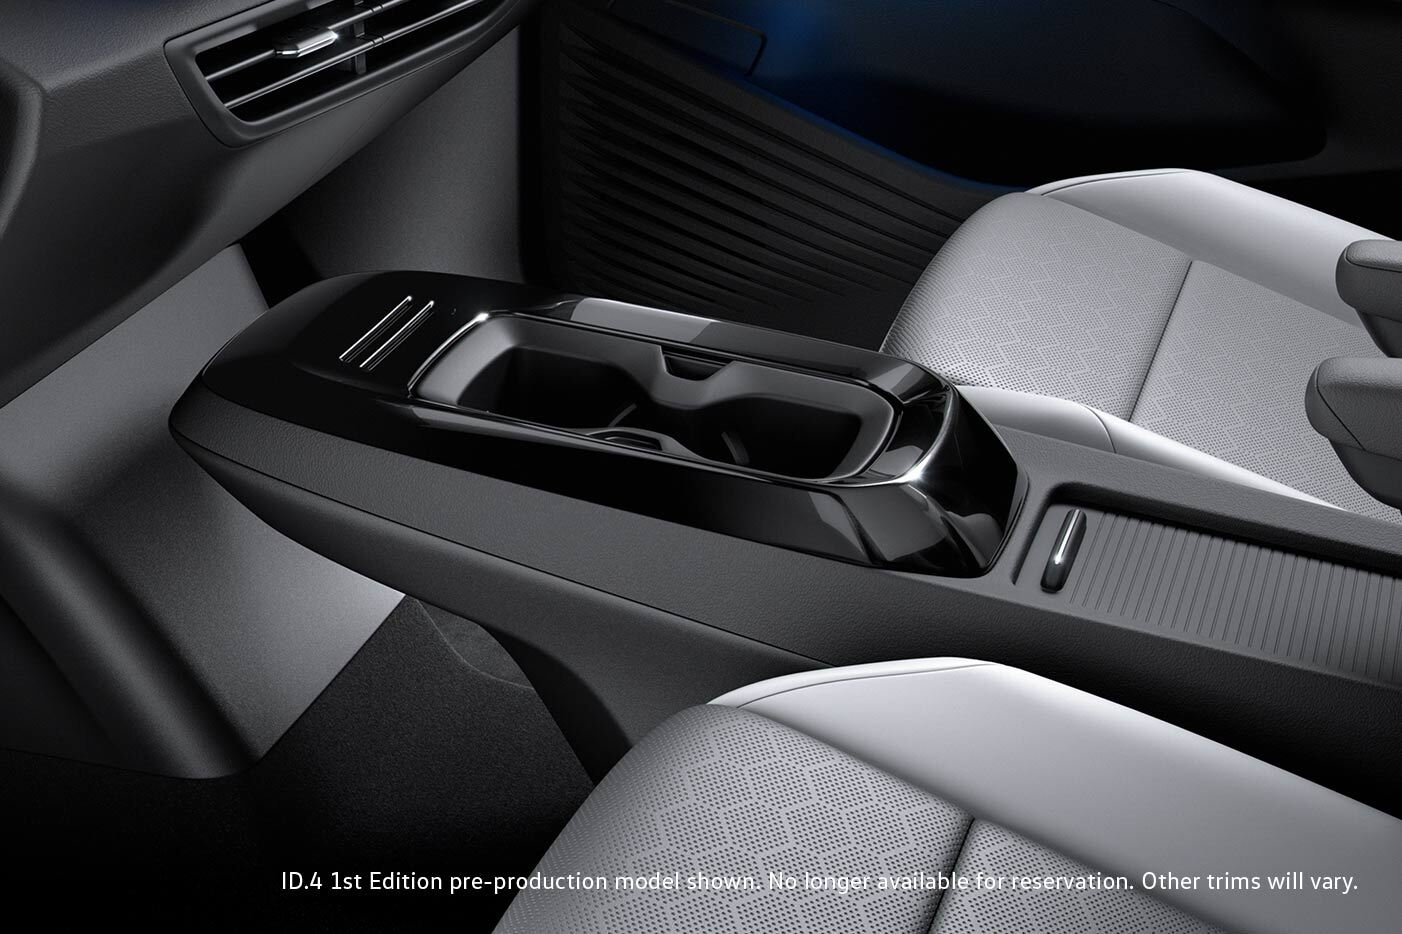 View of column in front seats of Volkswagen ID.4